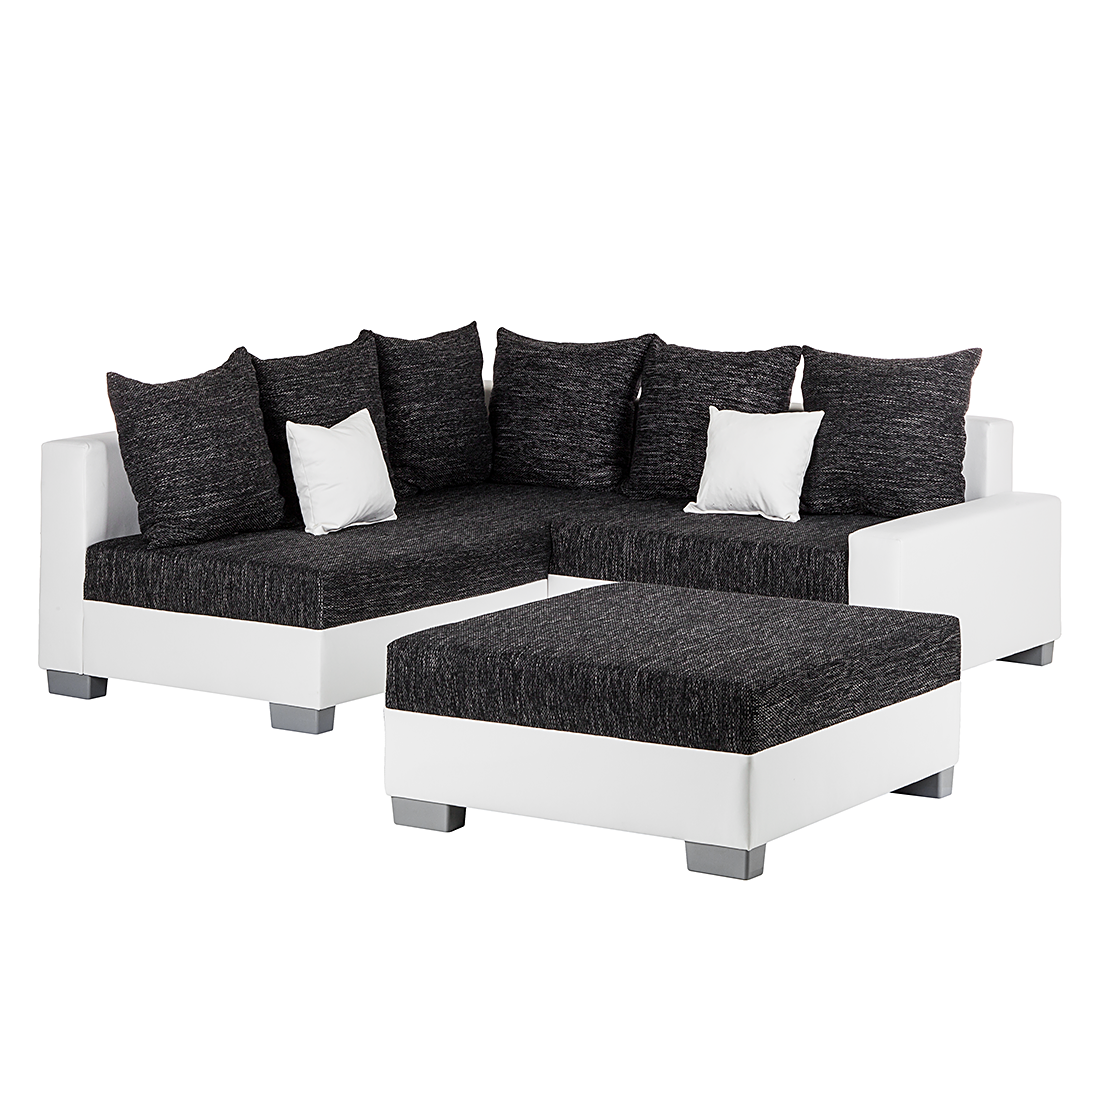 kleines sofa mit ottomane eklektisch wohnzimmer. Black Bedroom Furniture Sets. Home Design Ideas